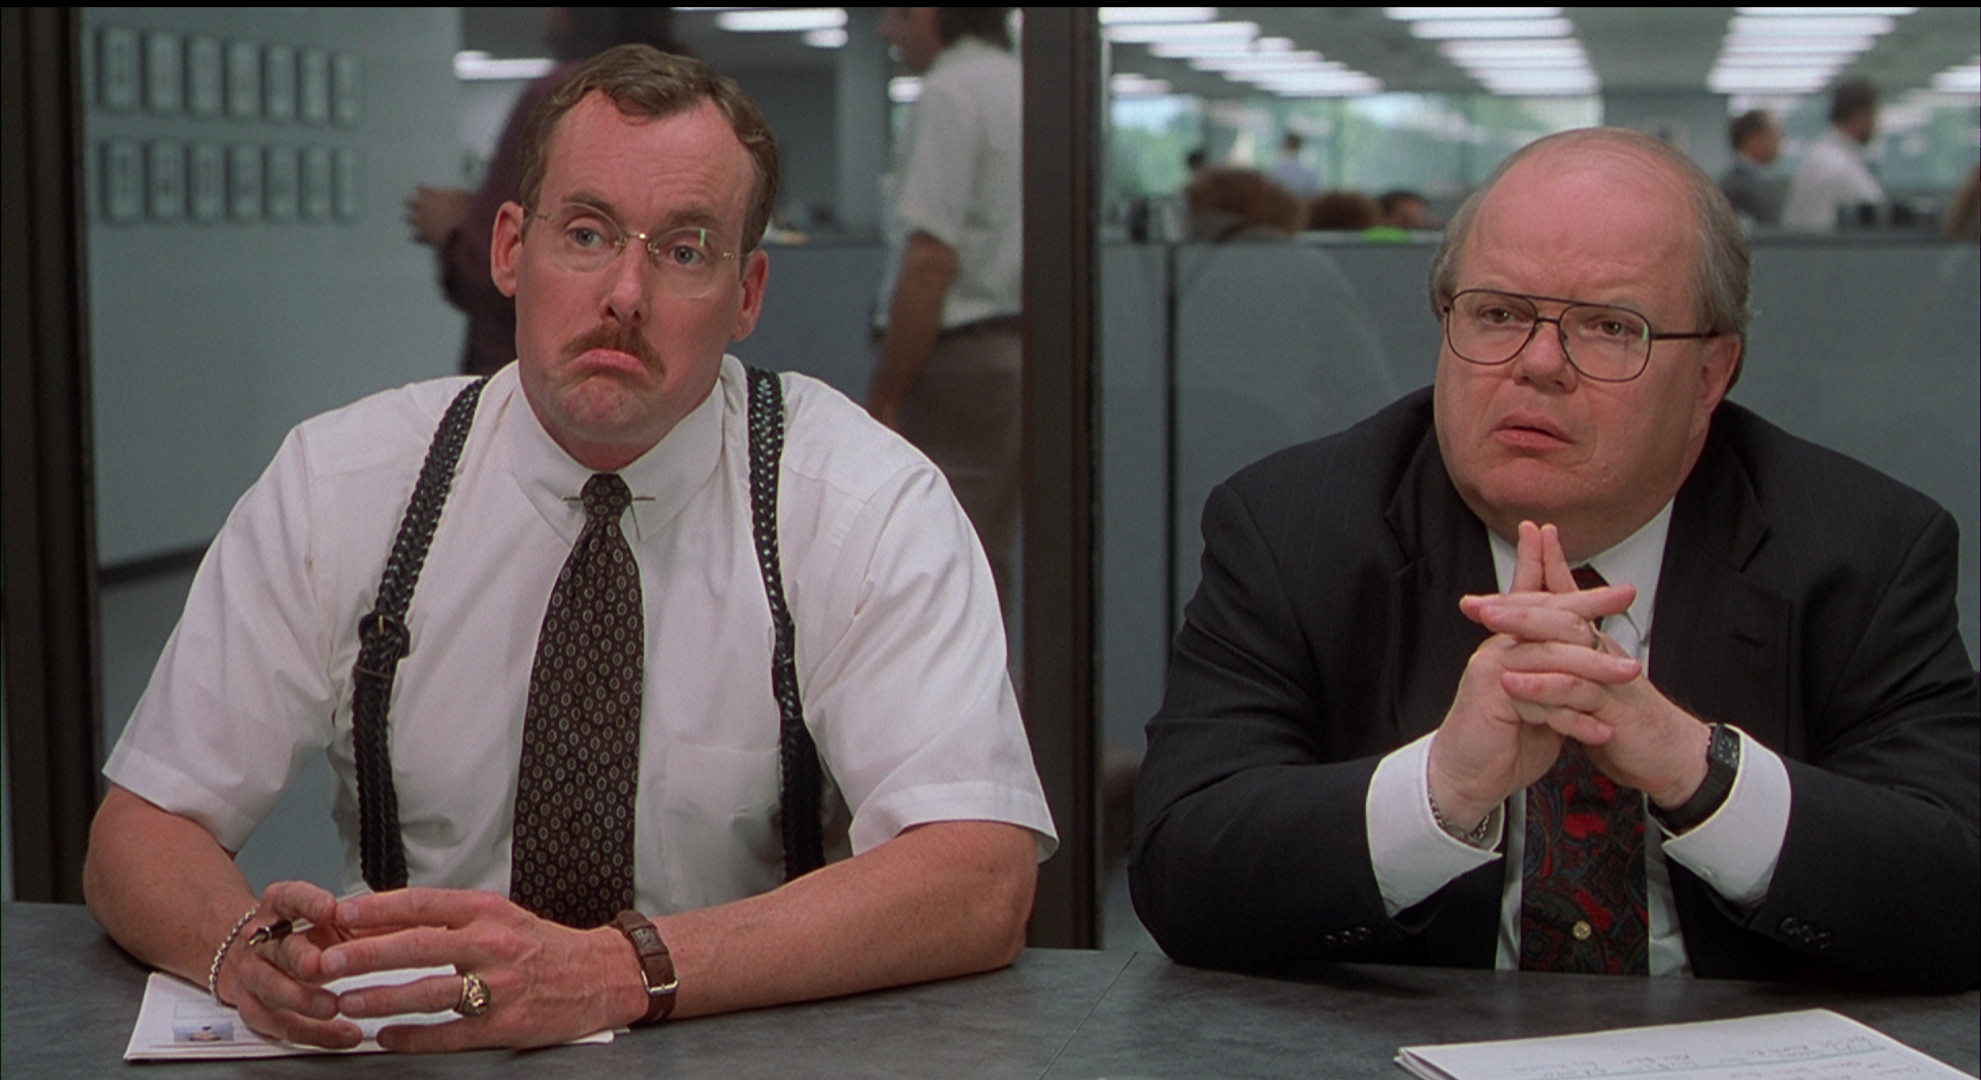 office space image. Office Space Image